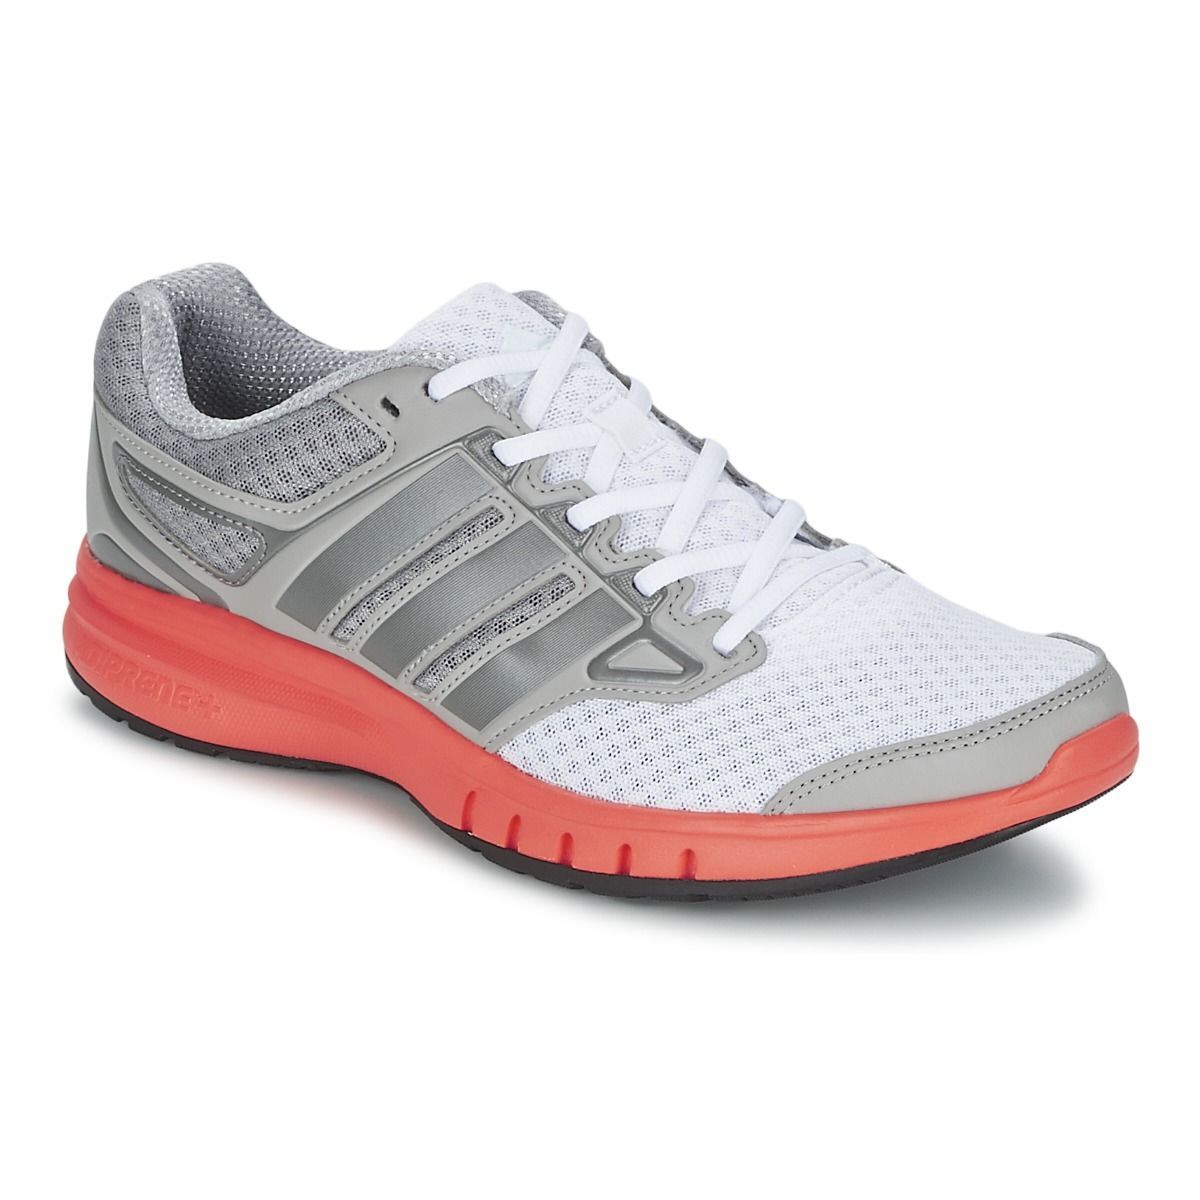 finest selection 0beef 10a56 ... New Adidas Galatic Elite Men Running Shoes Solar Red Size 9 ...